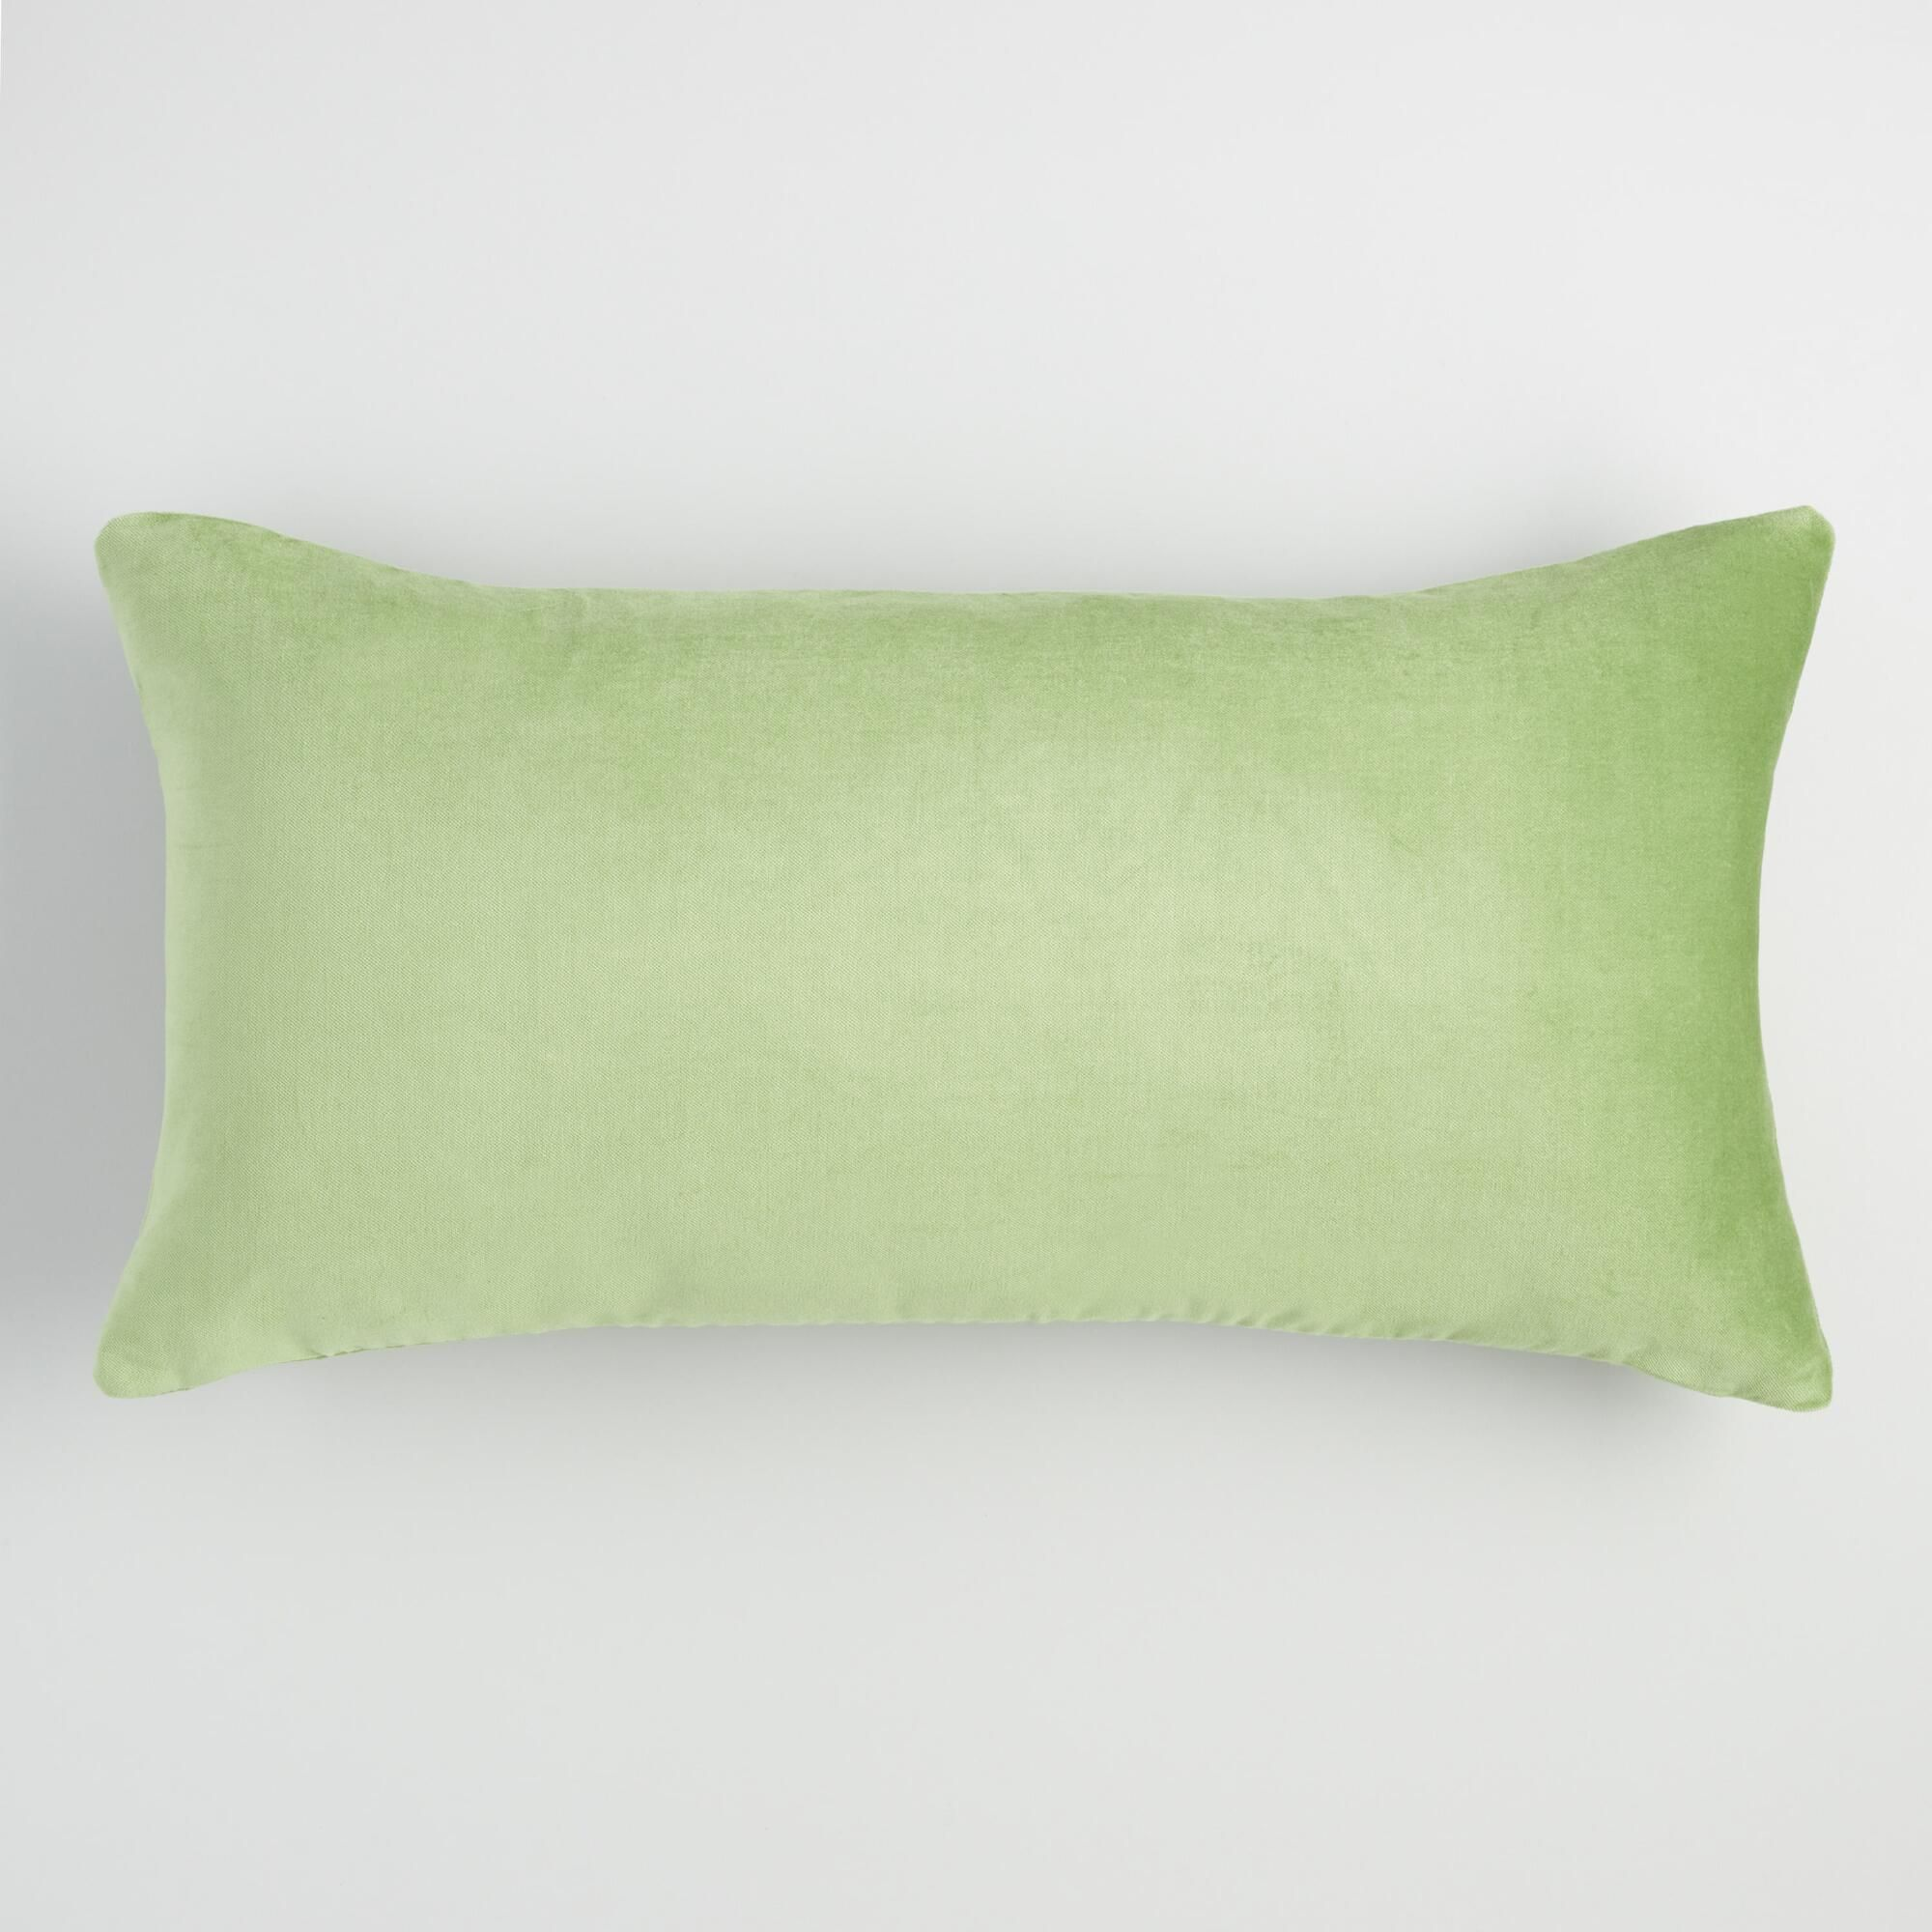 Sage Green Velvet Lumbar Pillow Cotton By World Market